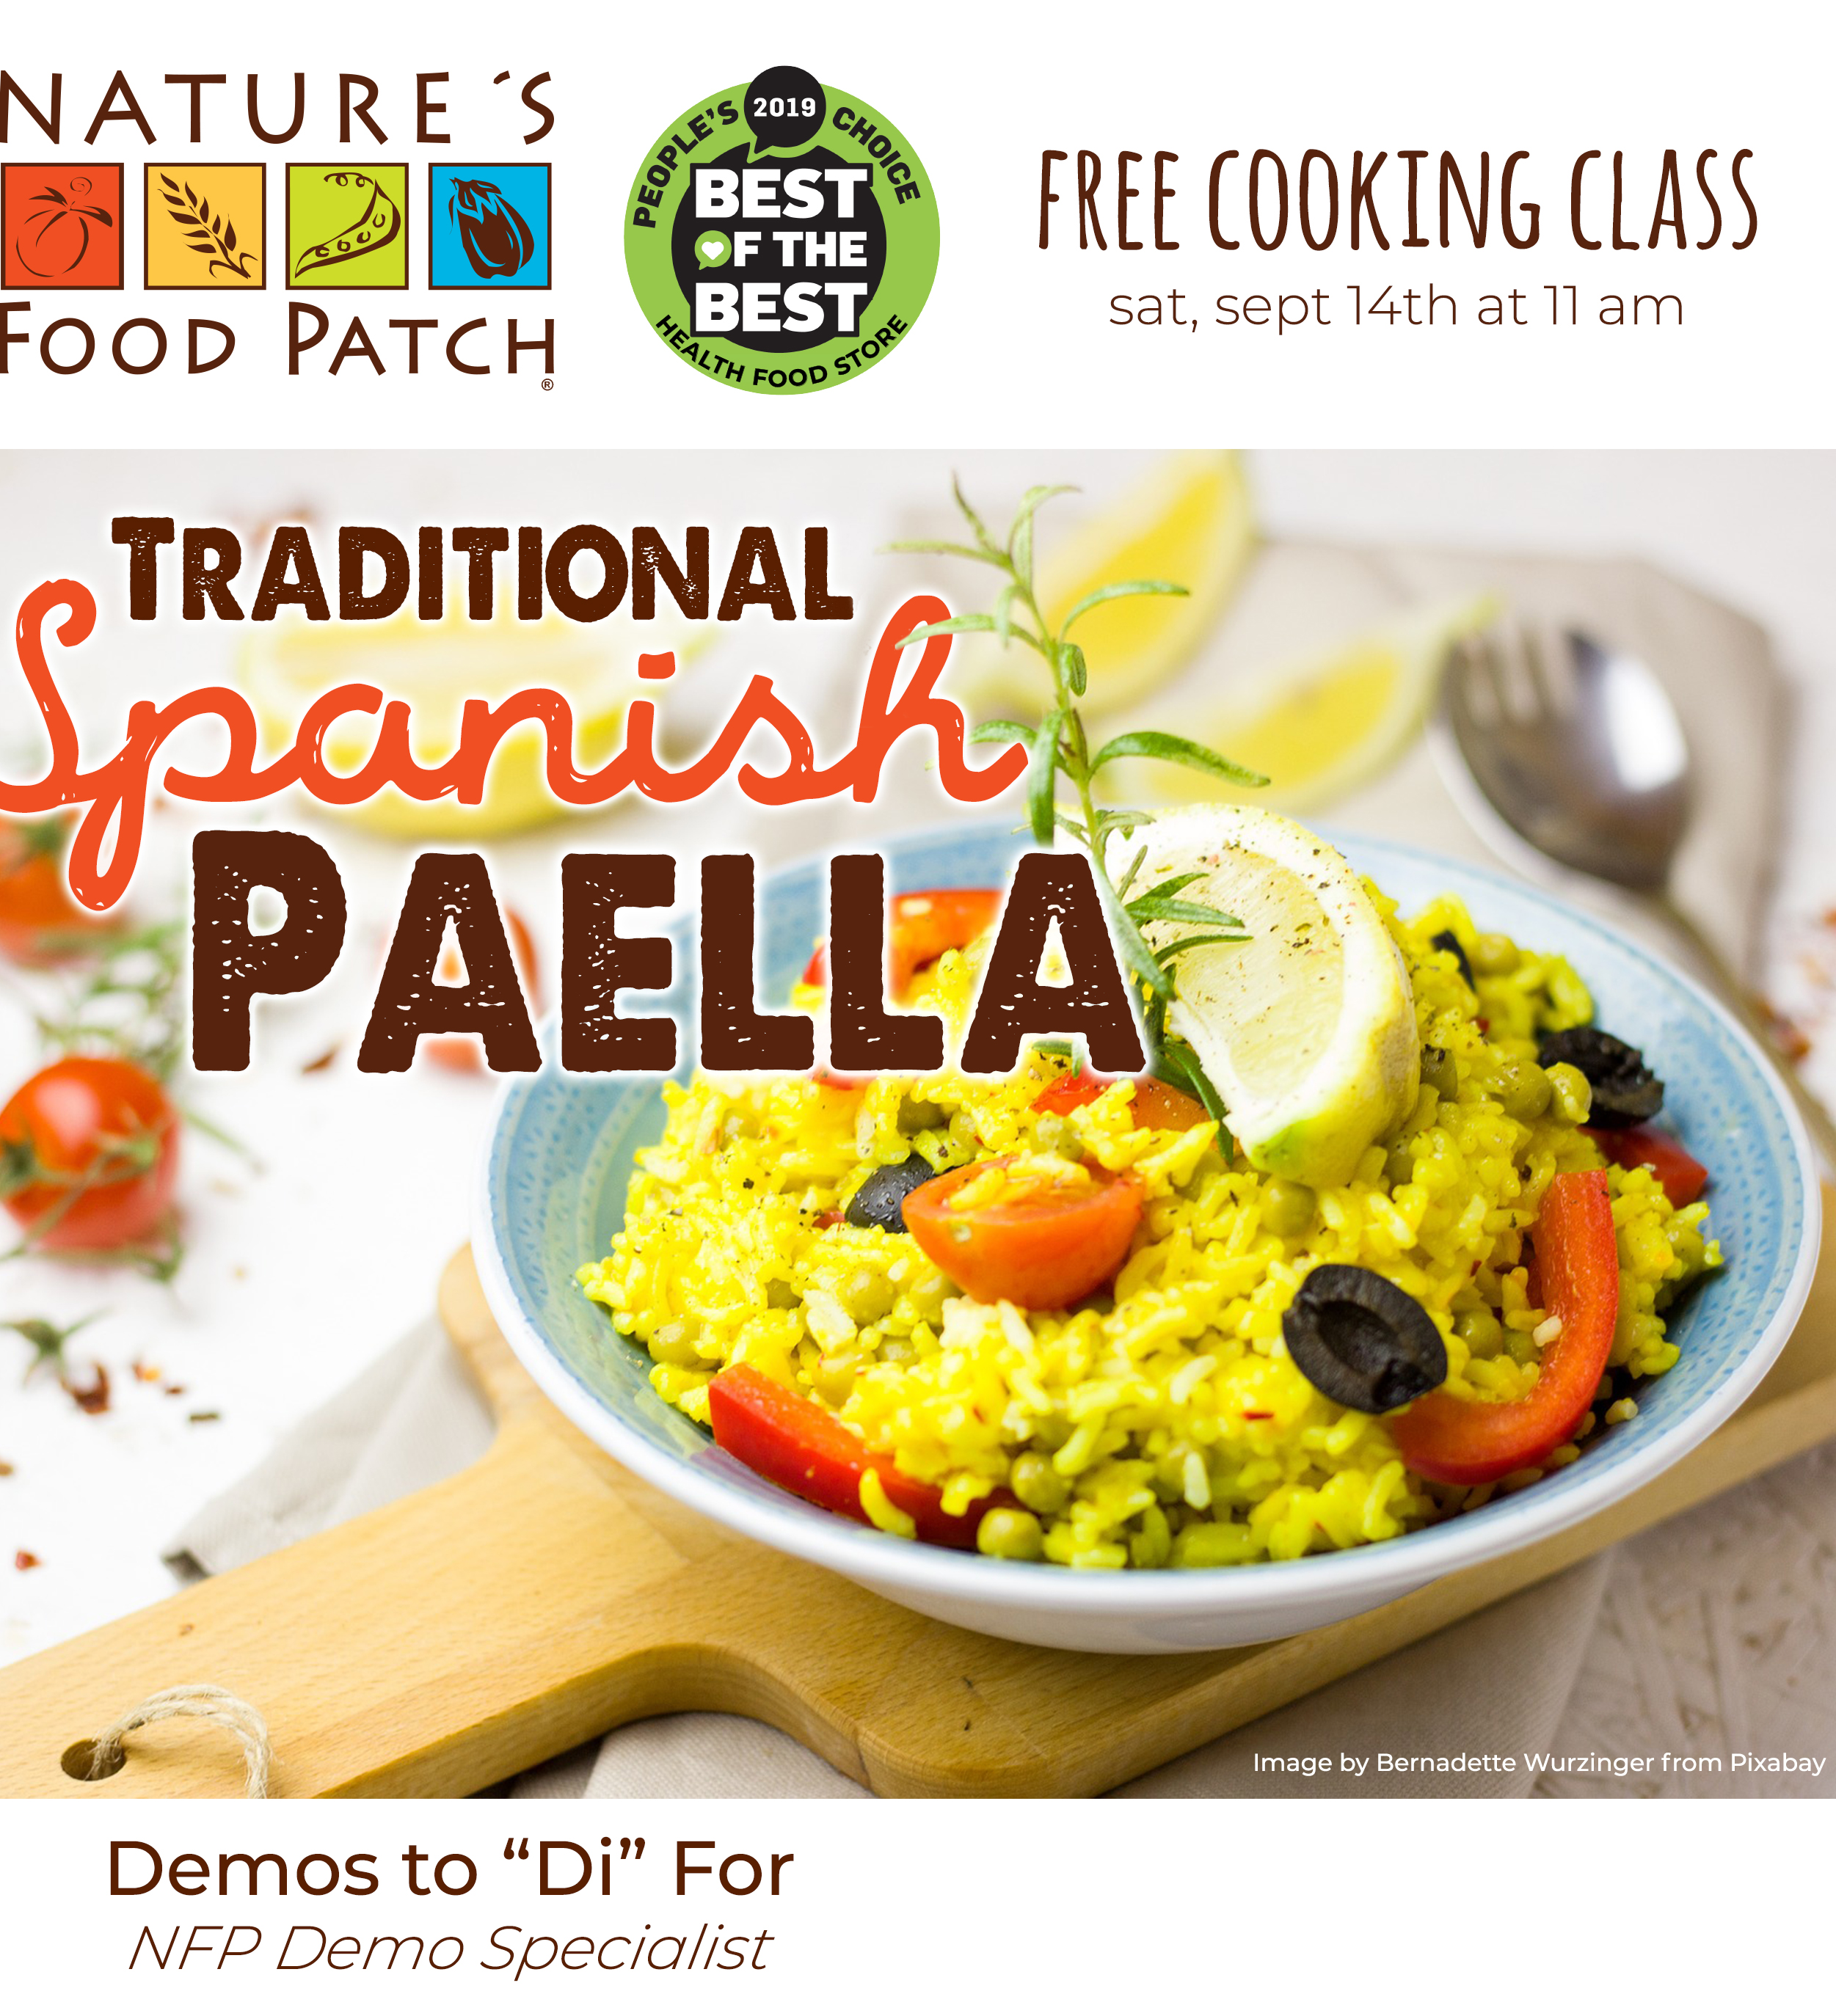 Traditional Spanish Paella, Nature's Food Patch - 1225 Cleveland Street - Clearwater